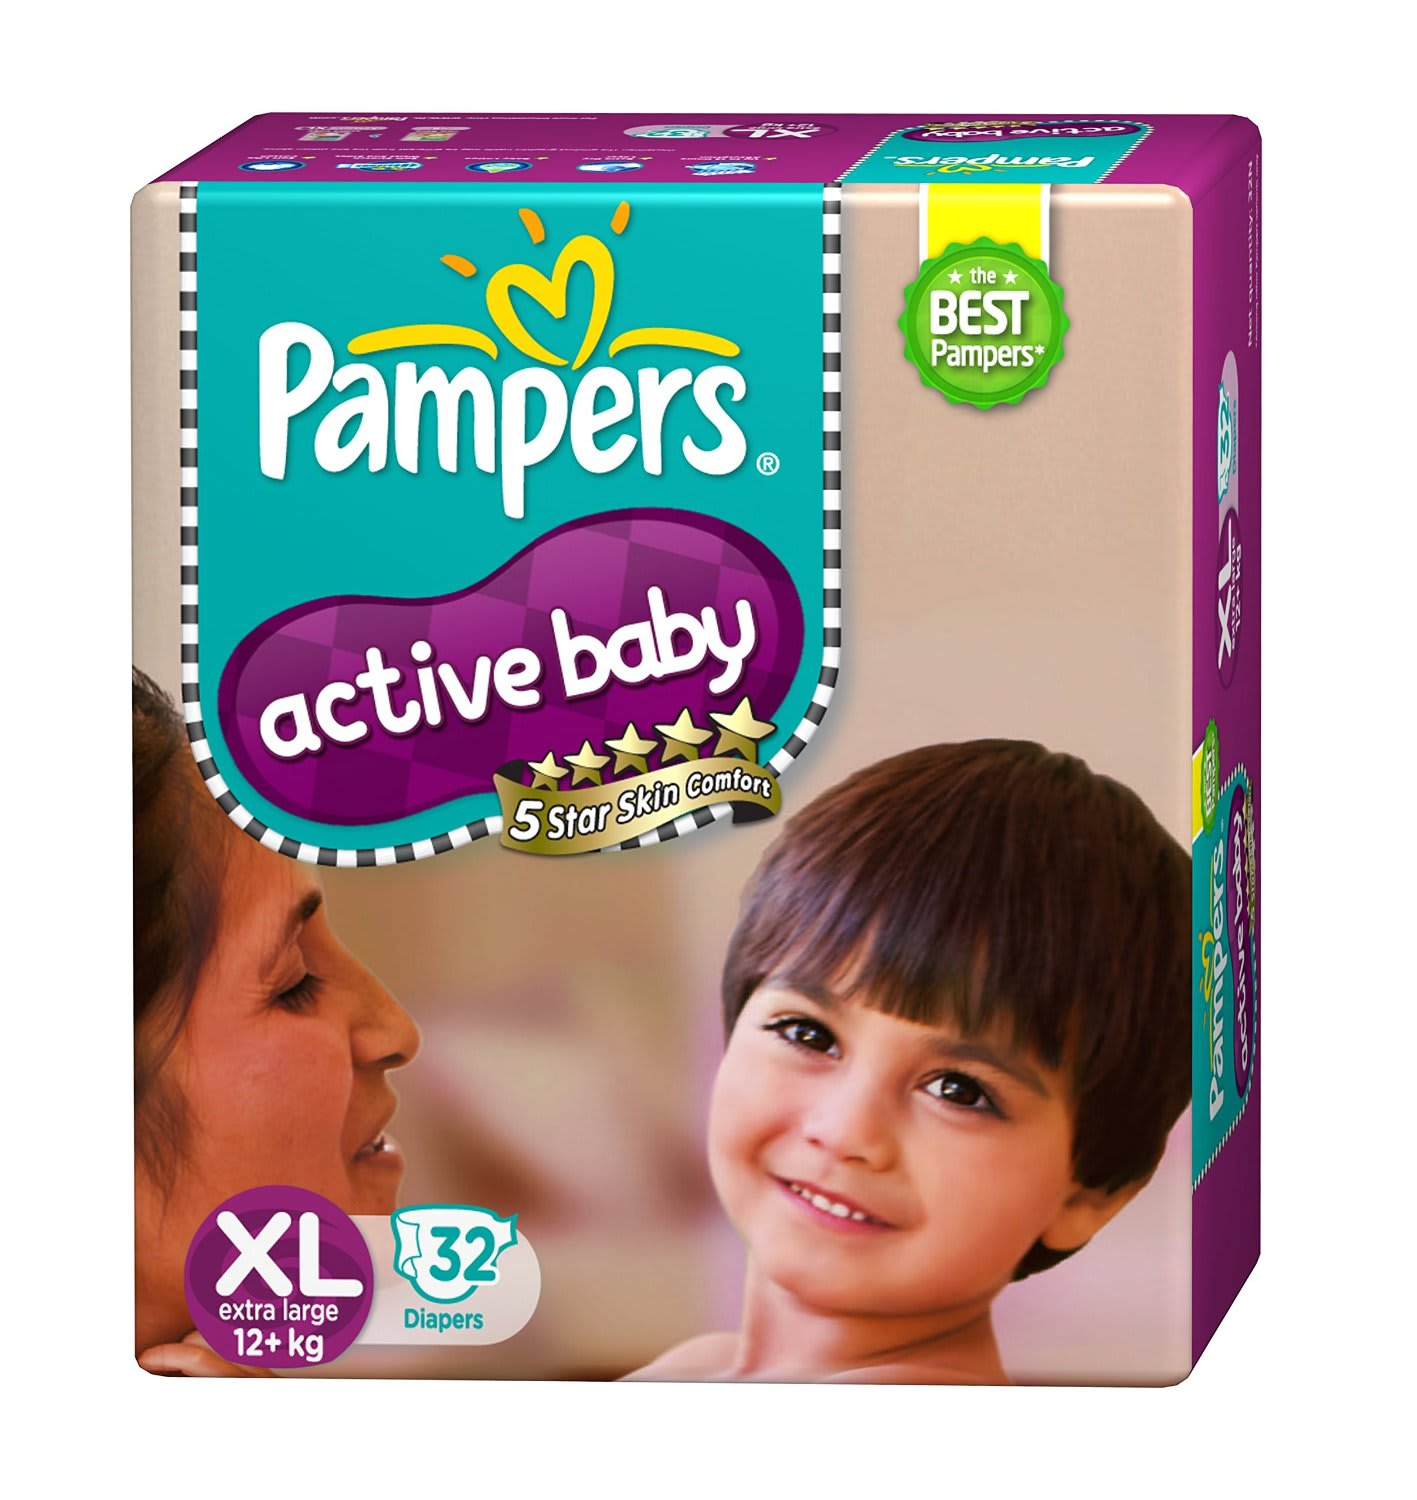 Pampers Active Baby Diaper XL